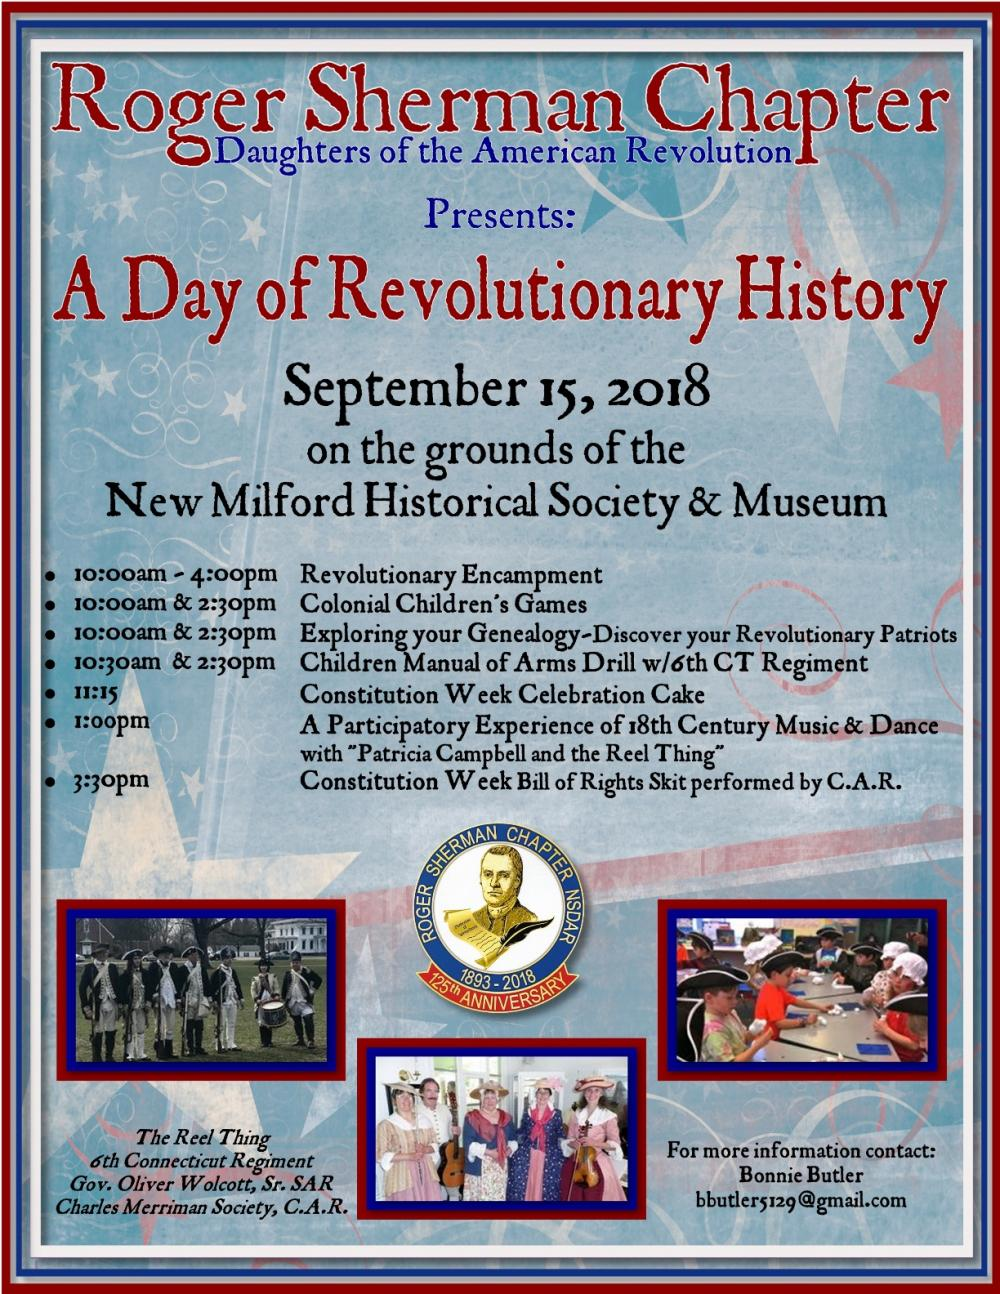 The Roger Sherman Chapter of the DAR presents A Day of Revolutionary History on the grounds of New M